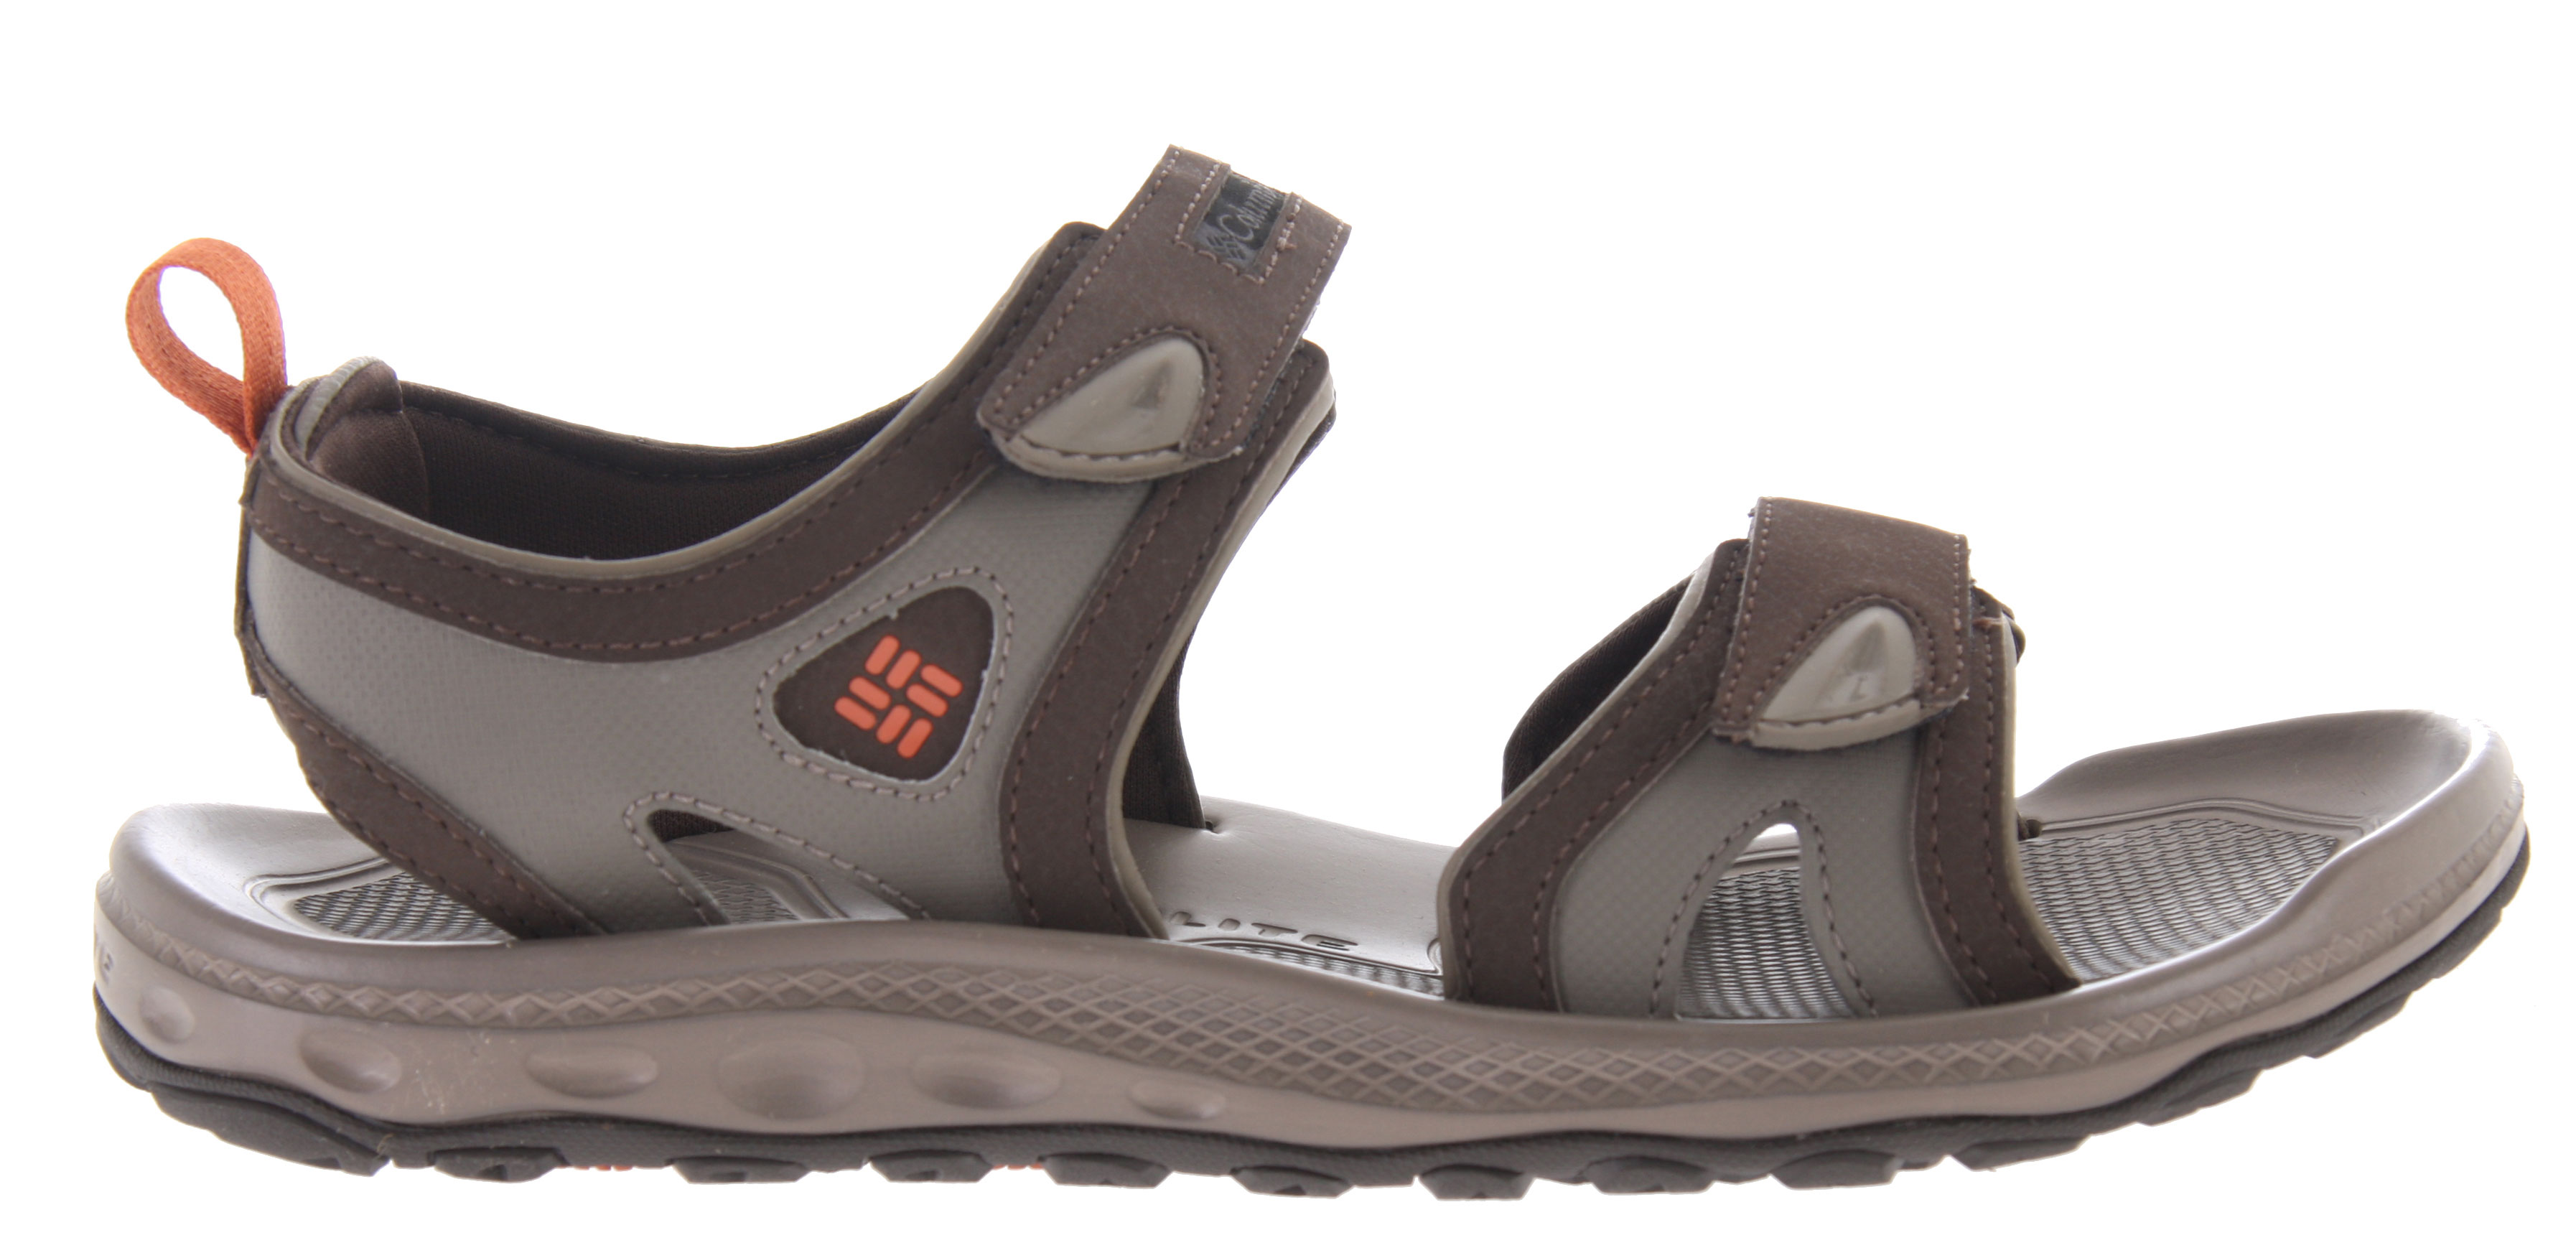 "Surf Dual strap water and land sandal, the Techsun 2 sandal is designed for multiple activities in and around water environments.Key Features of the Columbia Techsun 2 Sandals: Dual synthetic velcro straps for adjustable fit and to secure the foot over the footbed. Full length Techlite midsole with textured footbed for ""anti-slip"" underfoot Full length Omni-Grip traction with sticky rubber compound for traction in wet conditions; dual lug design for traction on land, rocks, and in and around the water. - $39.95"